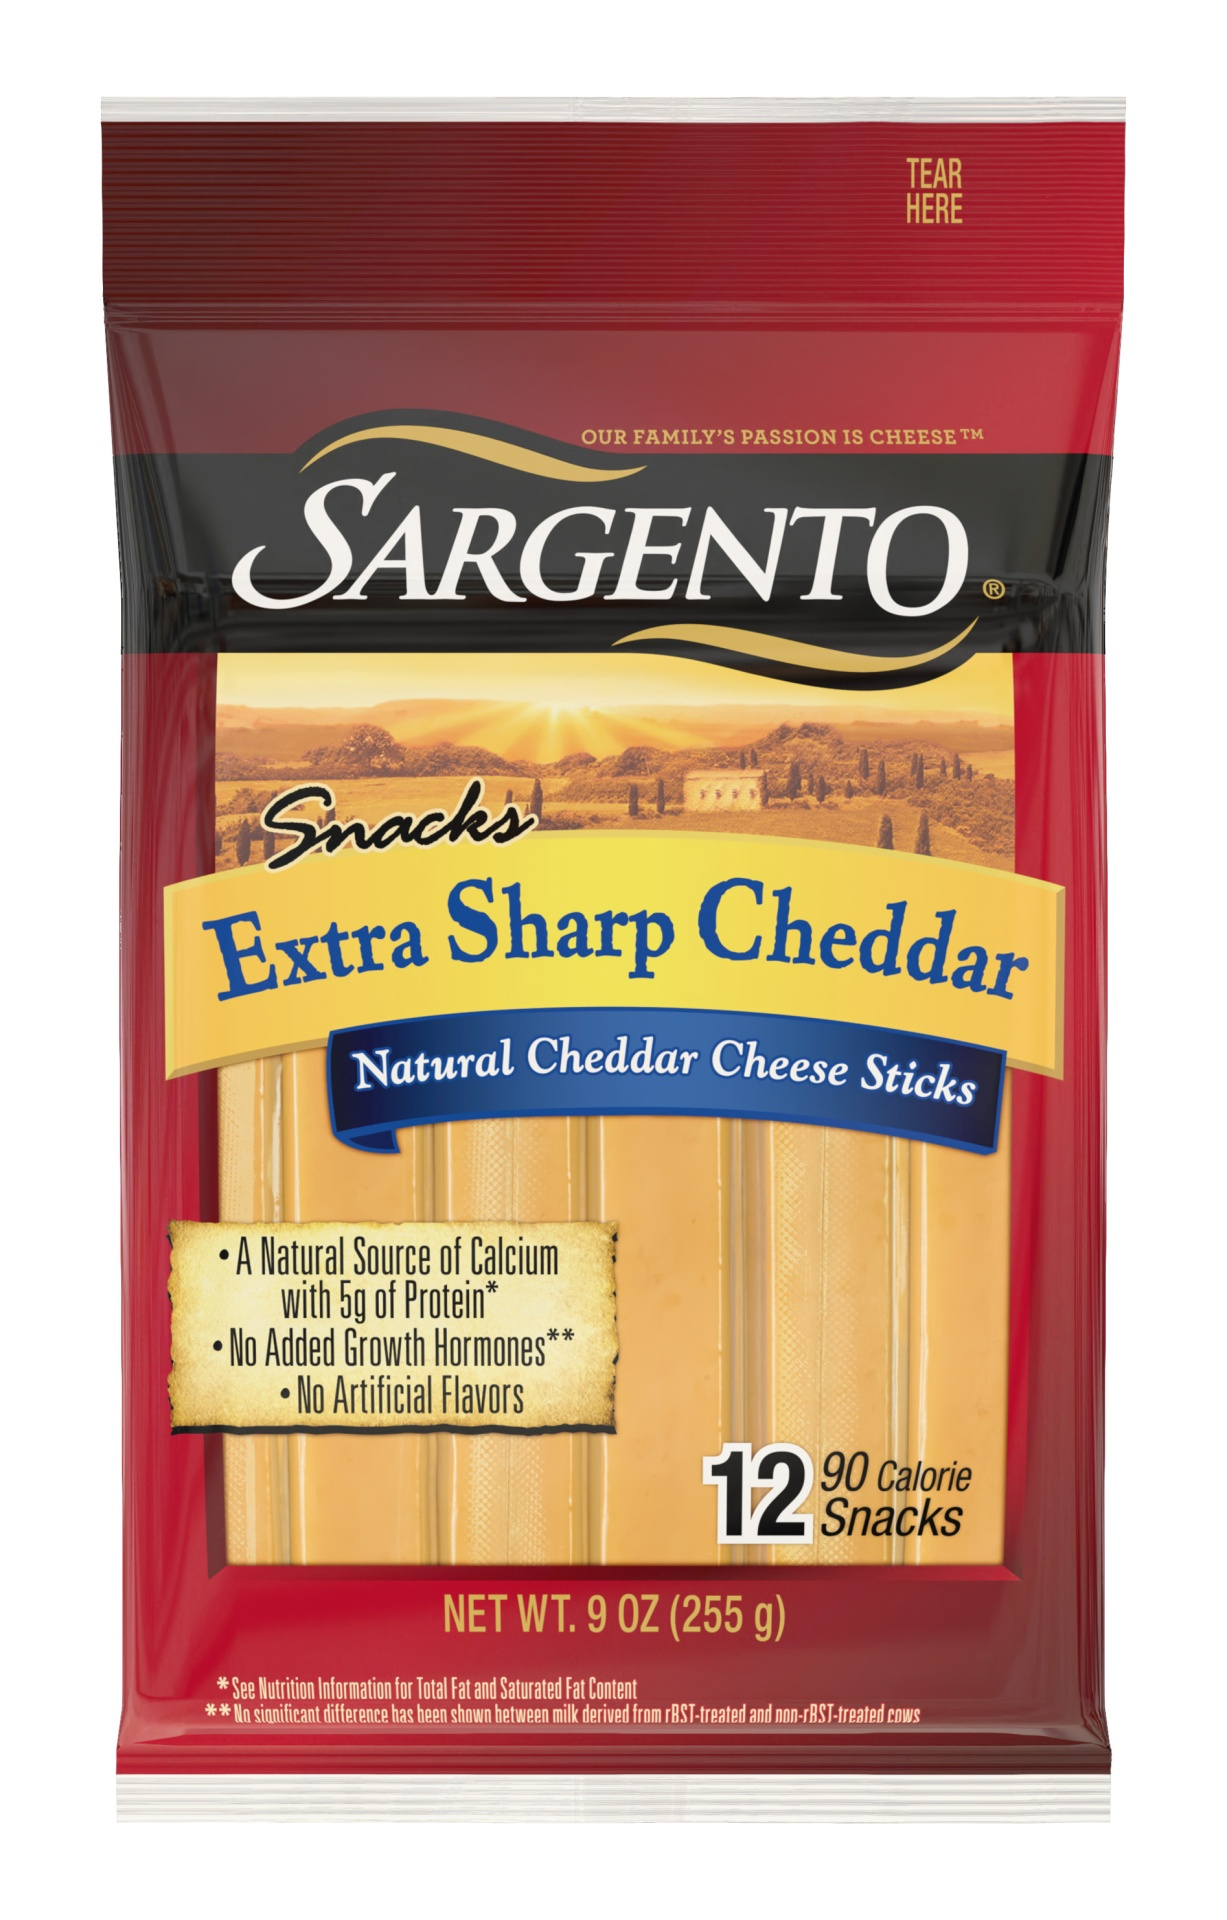 slide 1 of 6, Sargento Snacks Extra Sharp Cheddar Cheese Sticks,